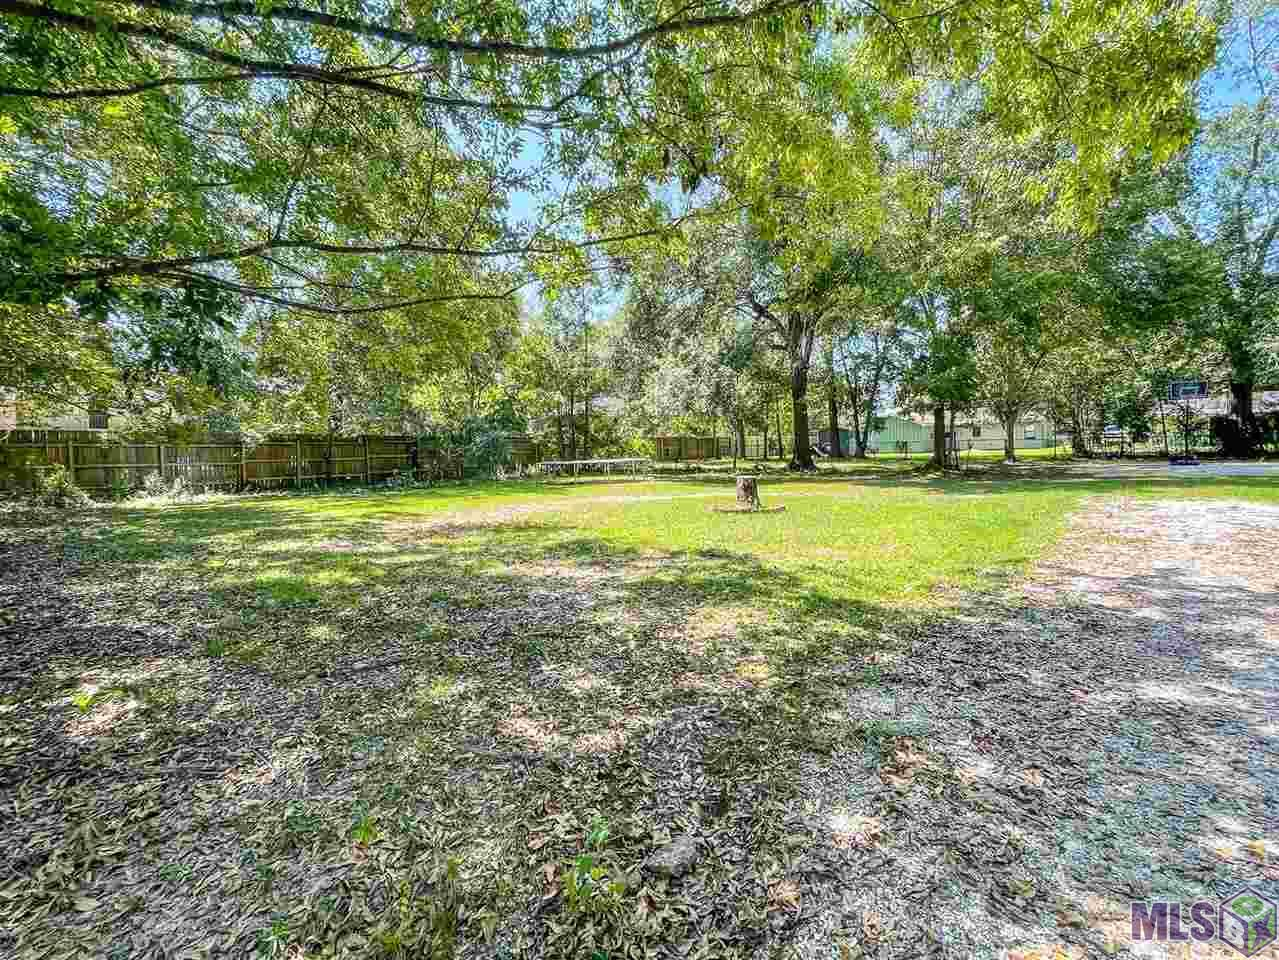 Great lot in the heart of Zachary.  This property is zoned RU-Urban.  RU-Urban Zoning would allow for a Multi-family dwelling to be built on the property. Buyer should check with the City of Zachary to confirm what exactly would be approved on this property.